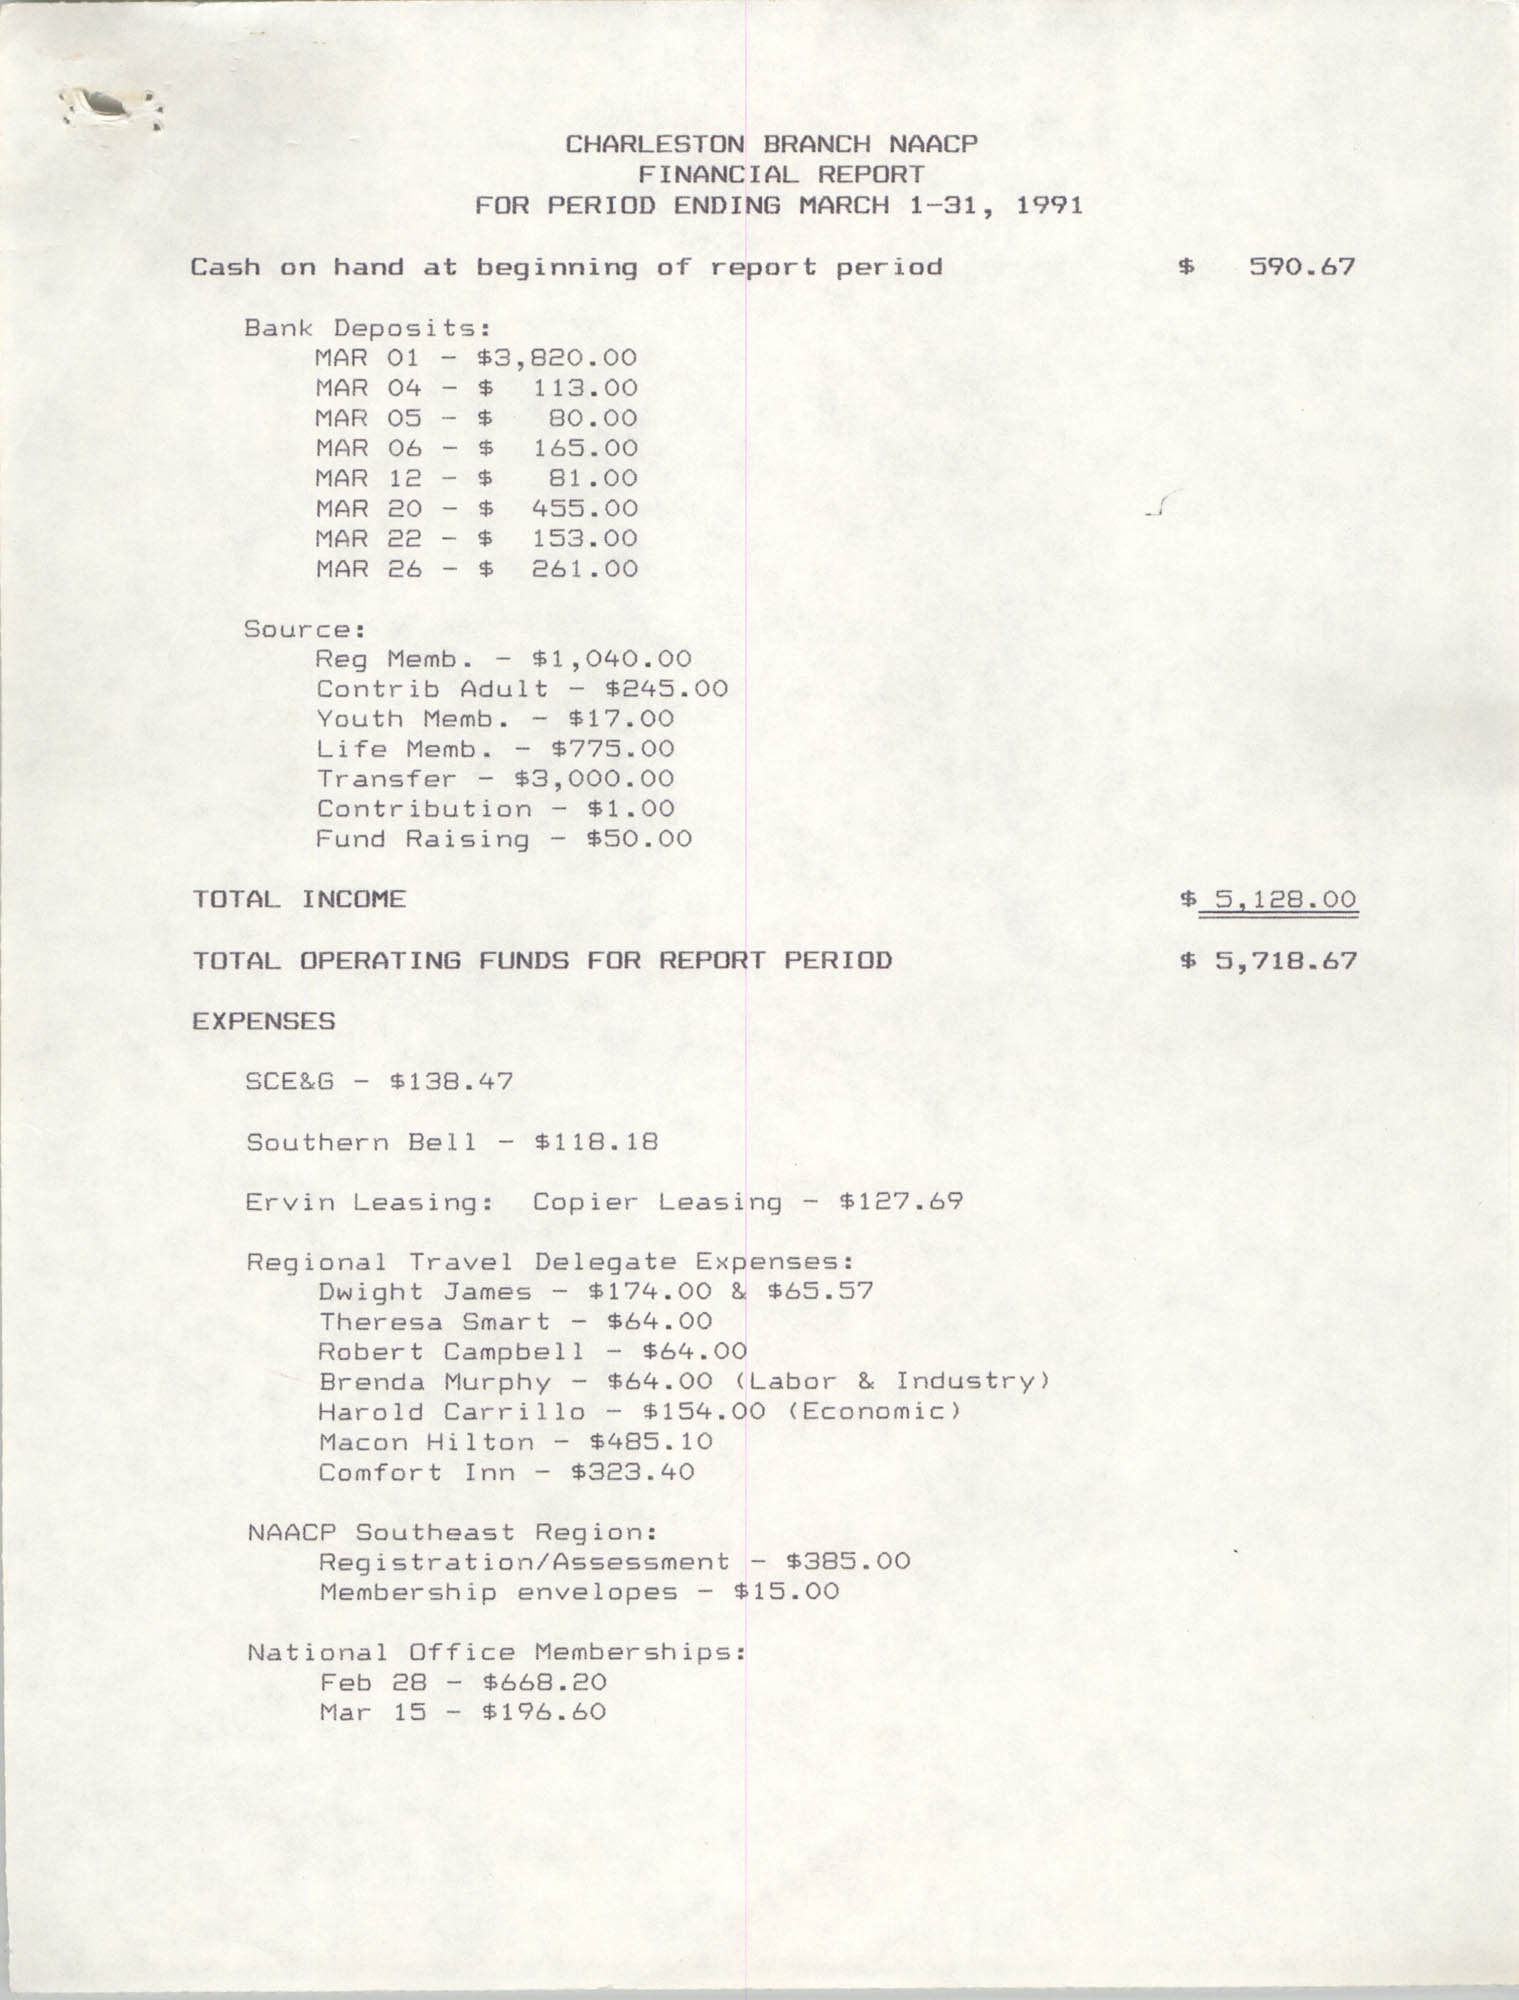 Charleston Branch of the NAACP Financial Report, March 1991, Page 1